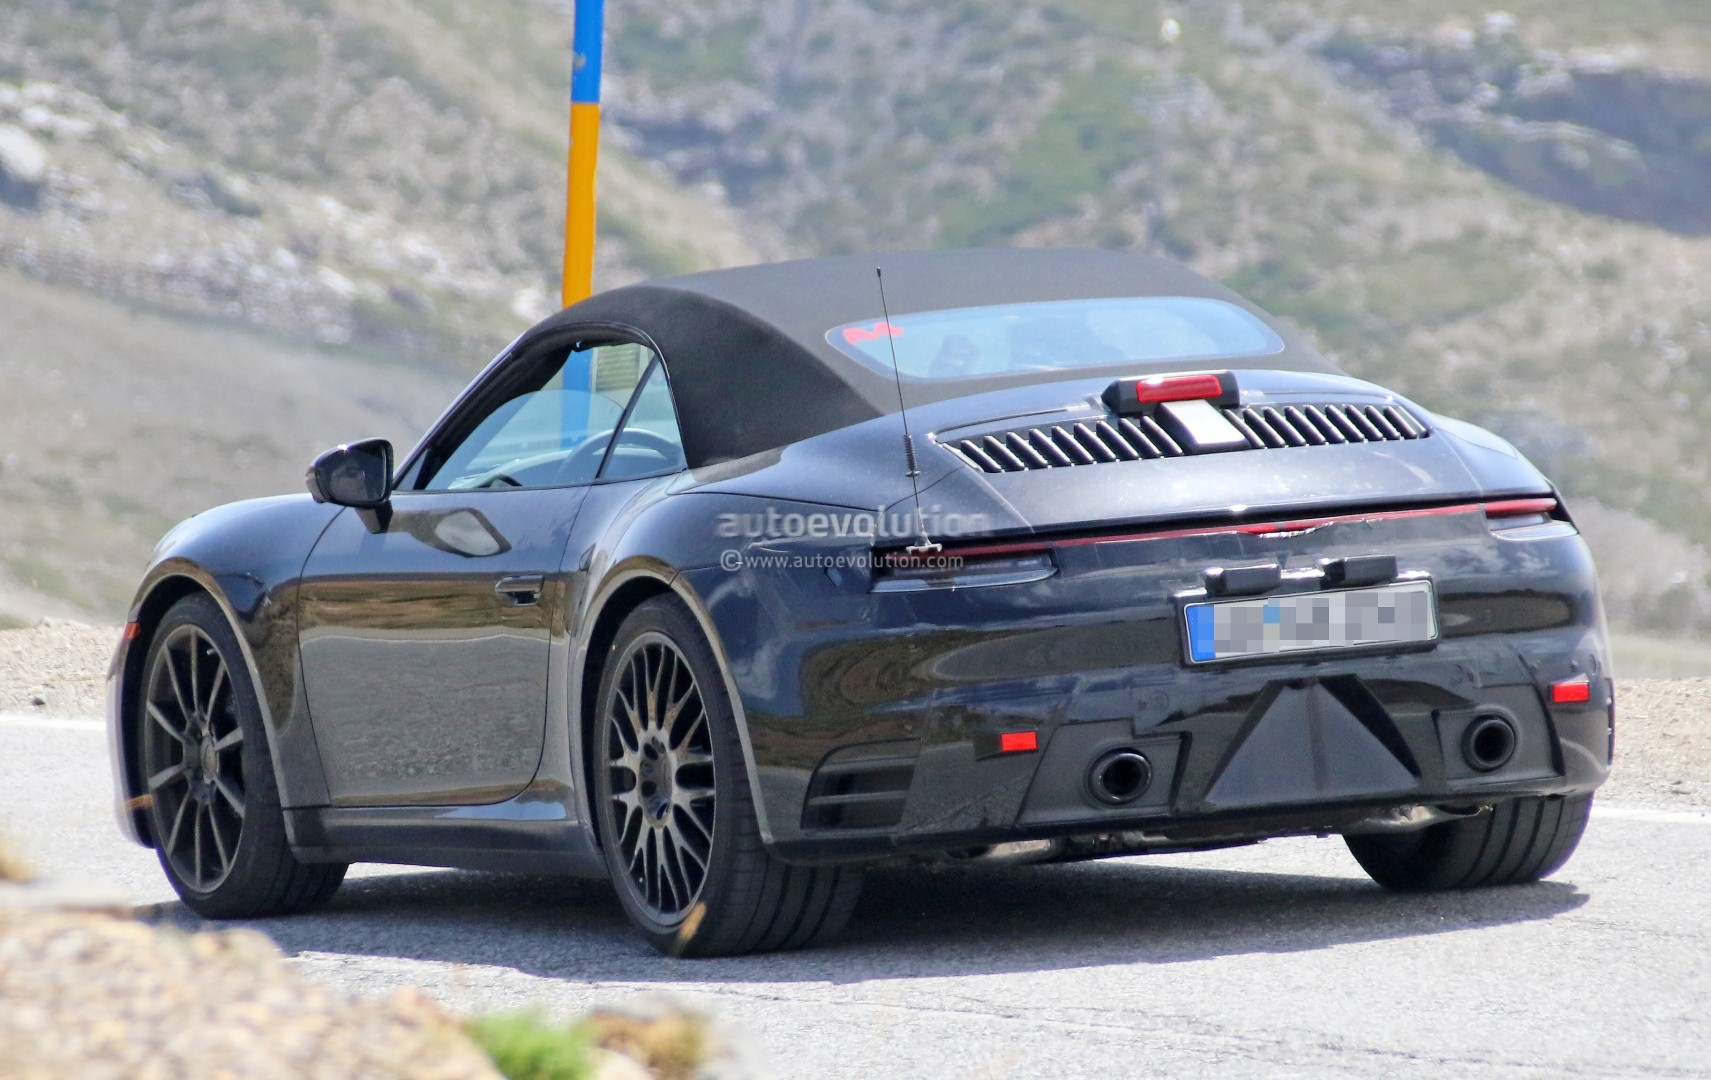 Spyshots 2019 Porsche 911 Shows Muffler Design Hints At